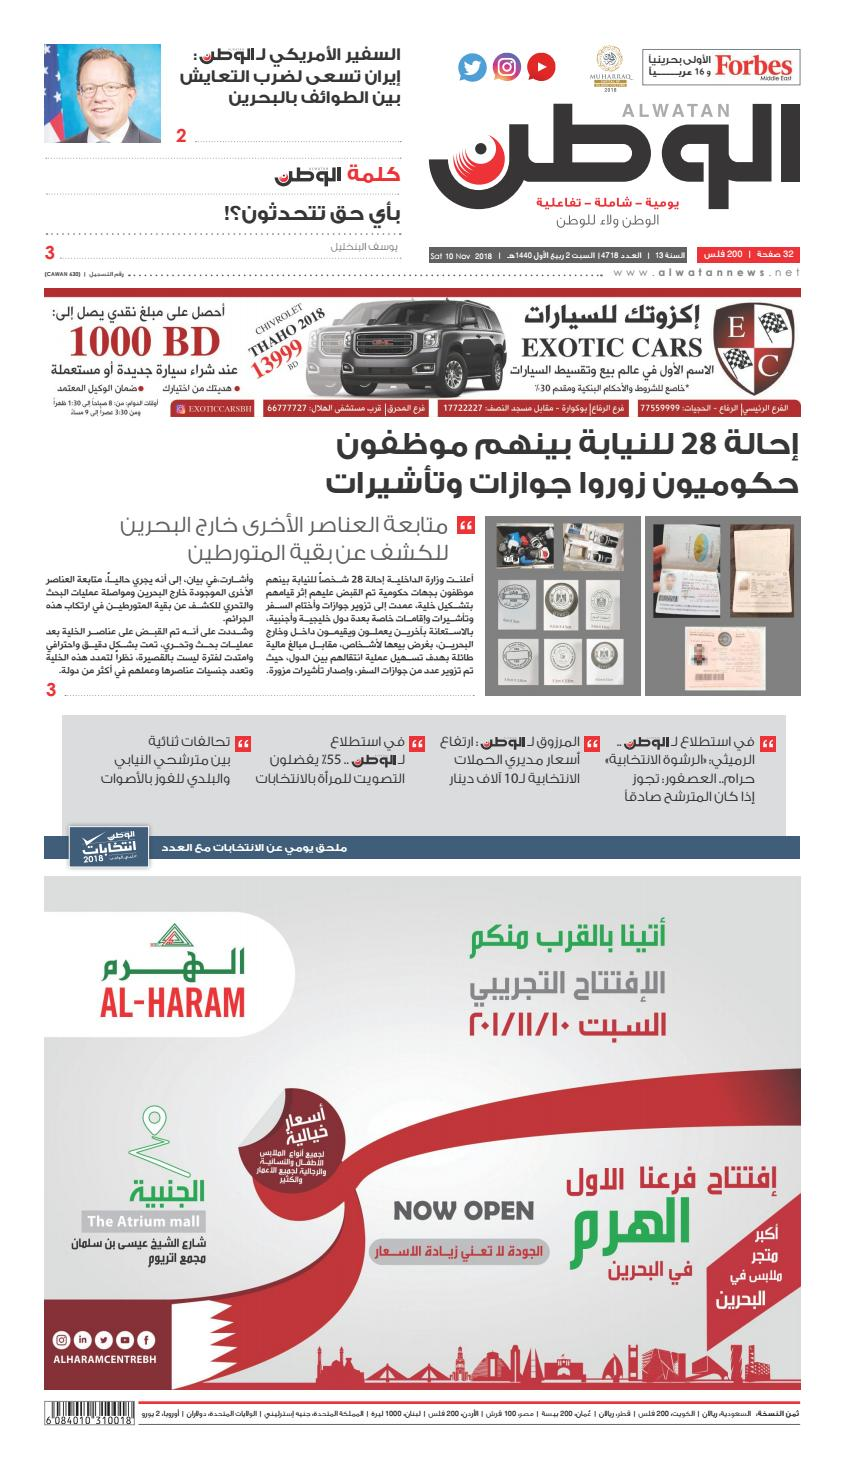 fe0377e3e7ea9 Alwatan 10 NOV 2018 by Alwatan BH - issuu